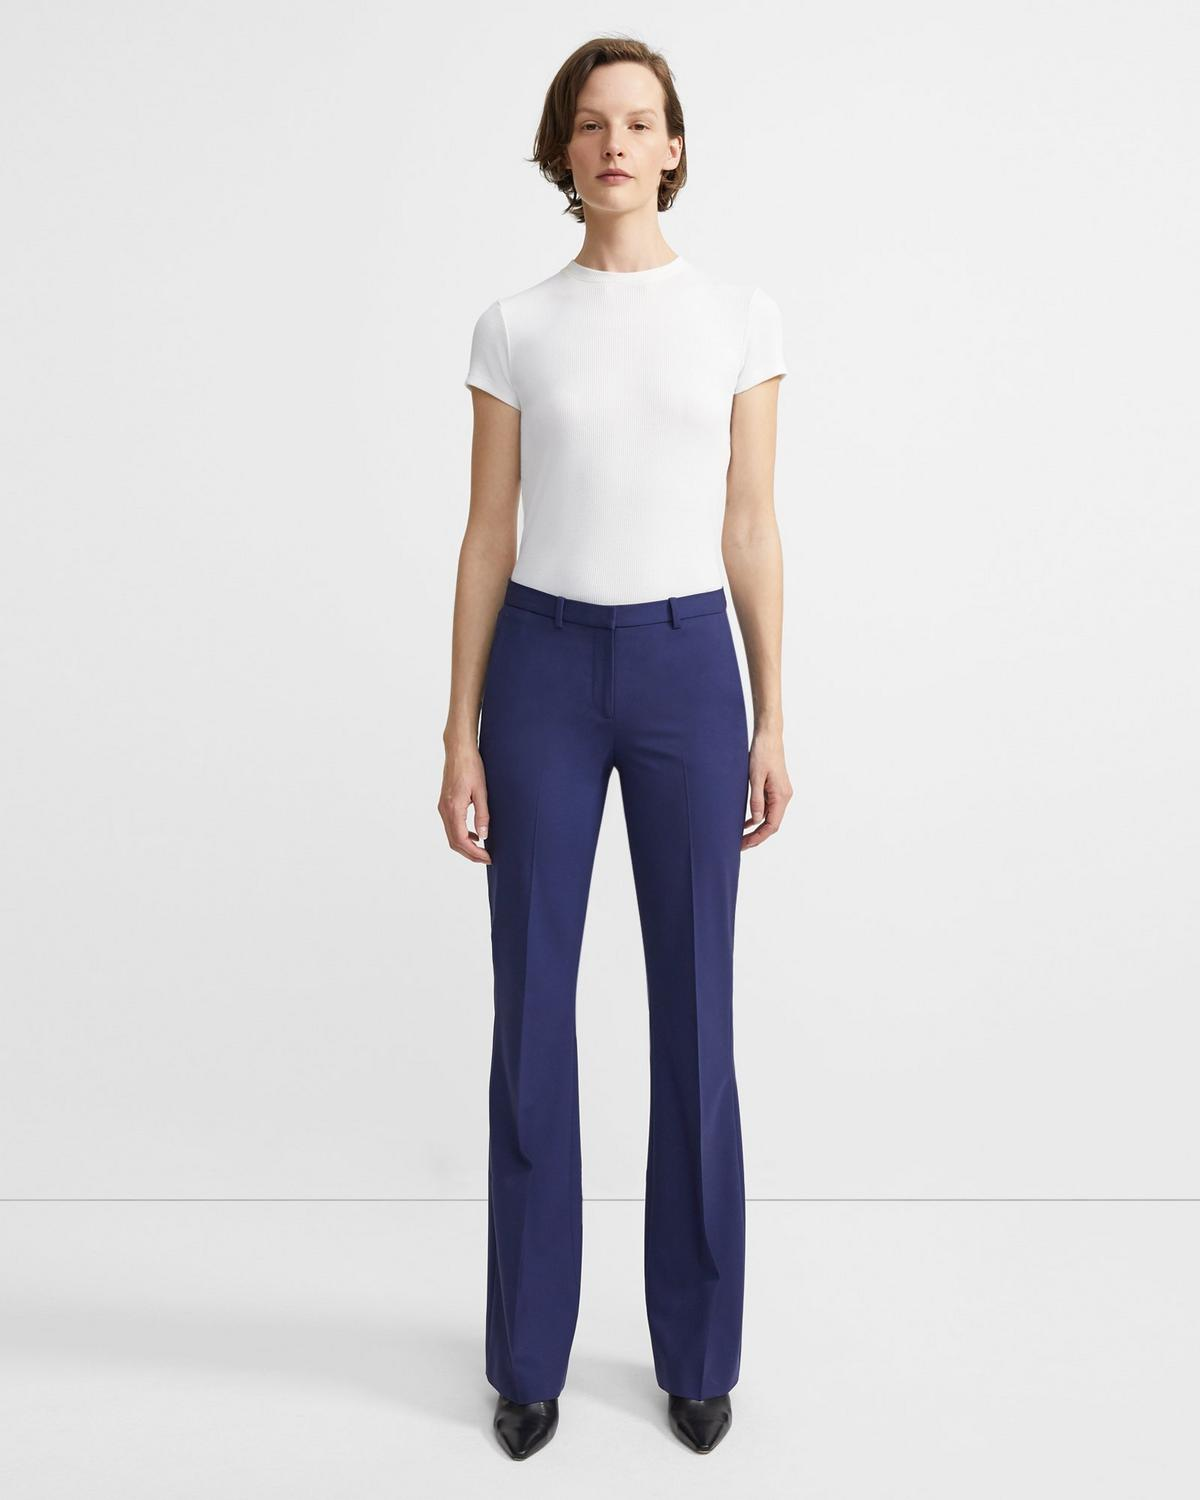 Demitria Pant in Good Wool